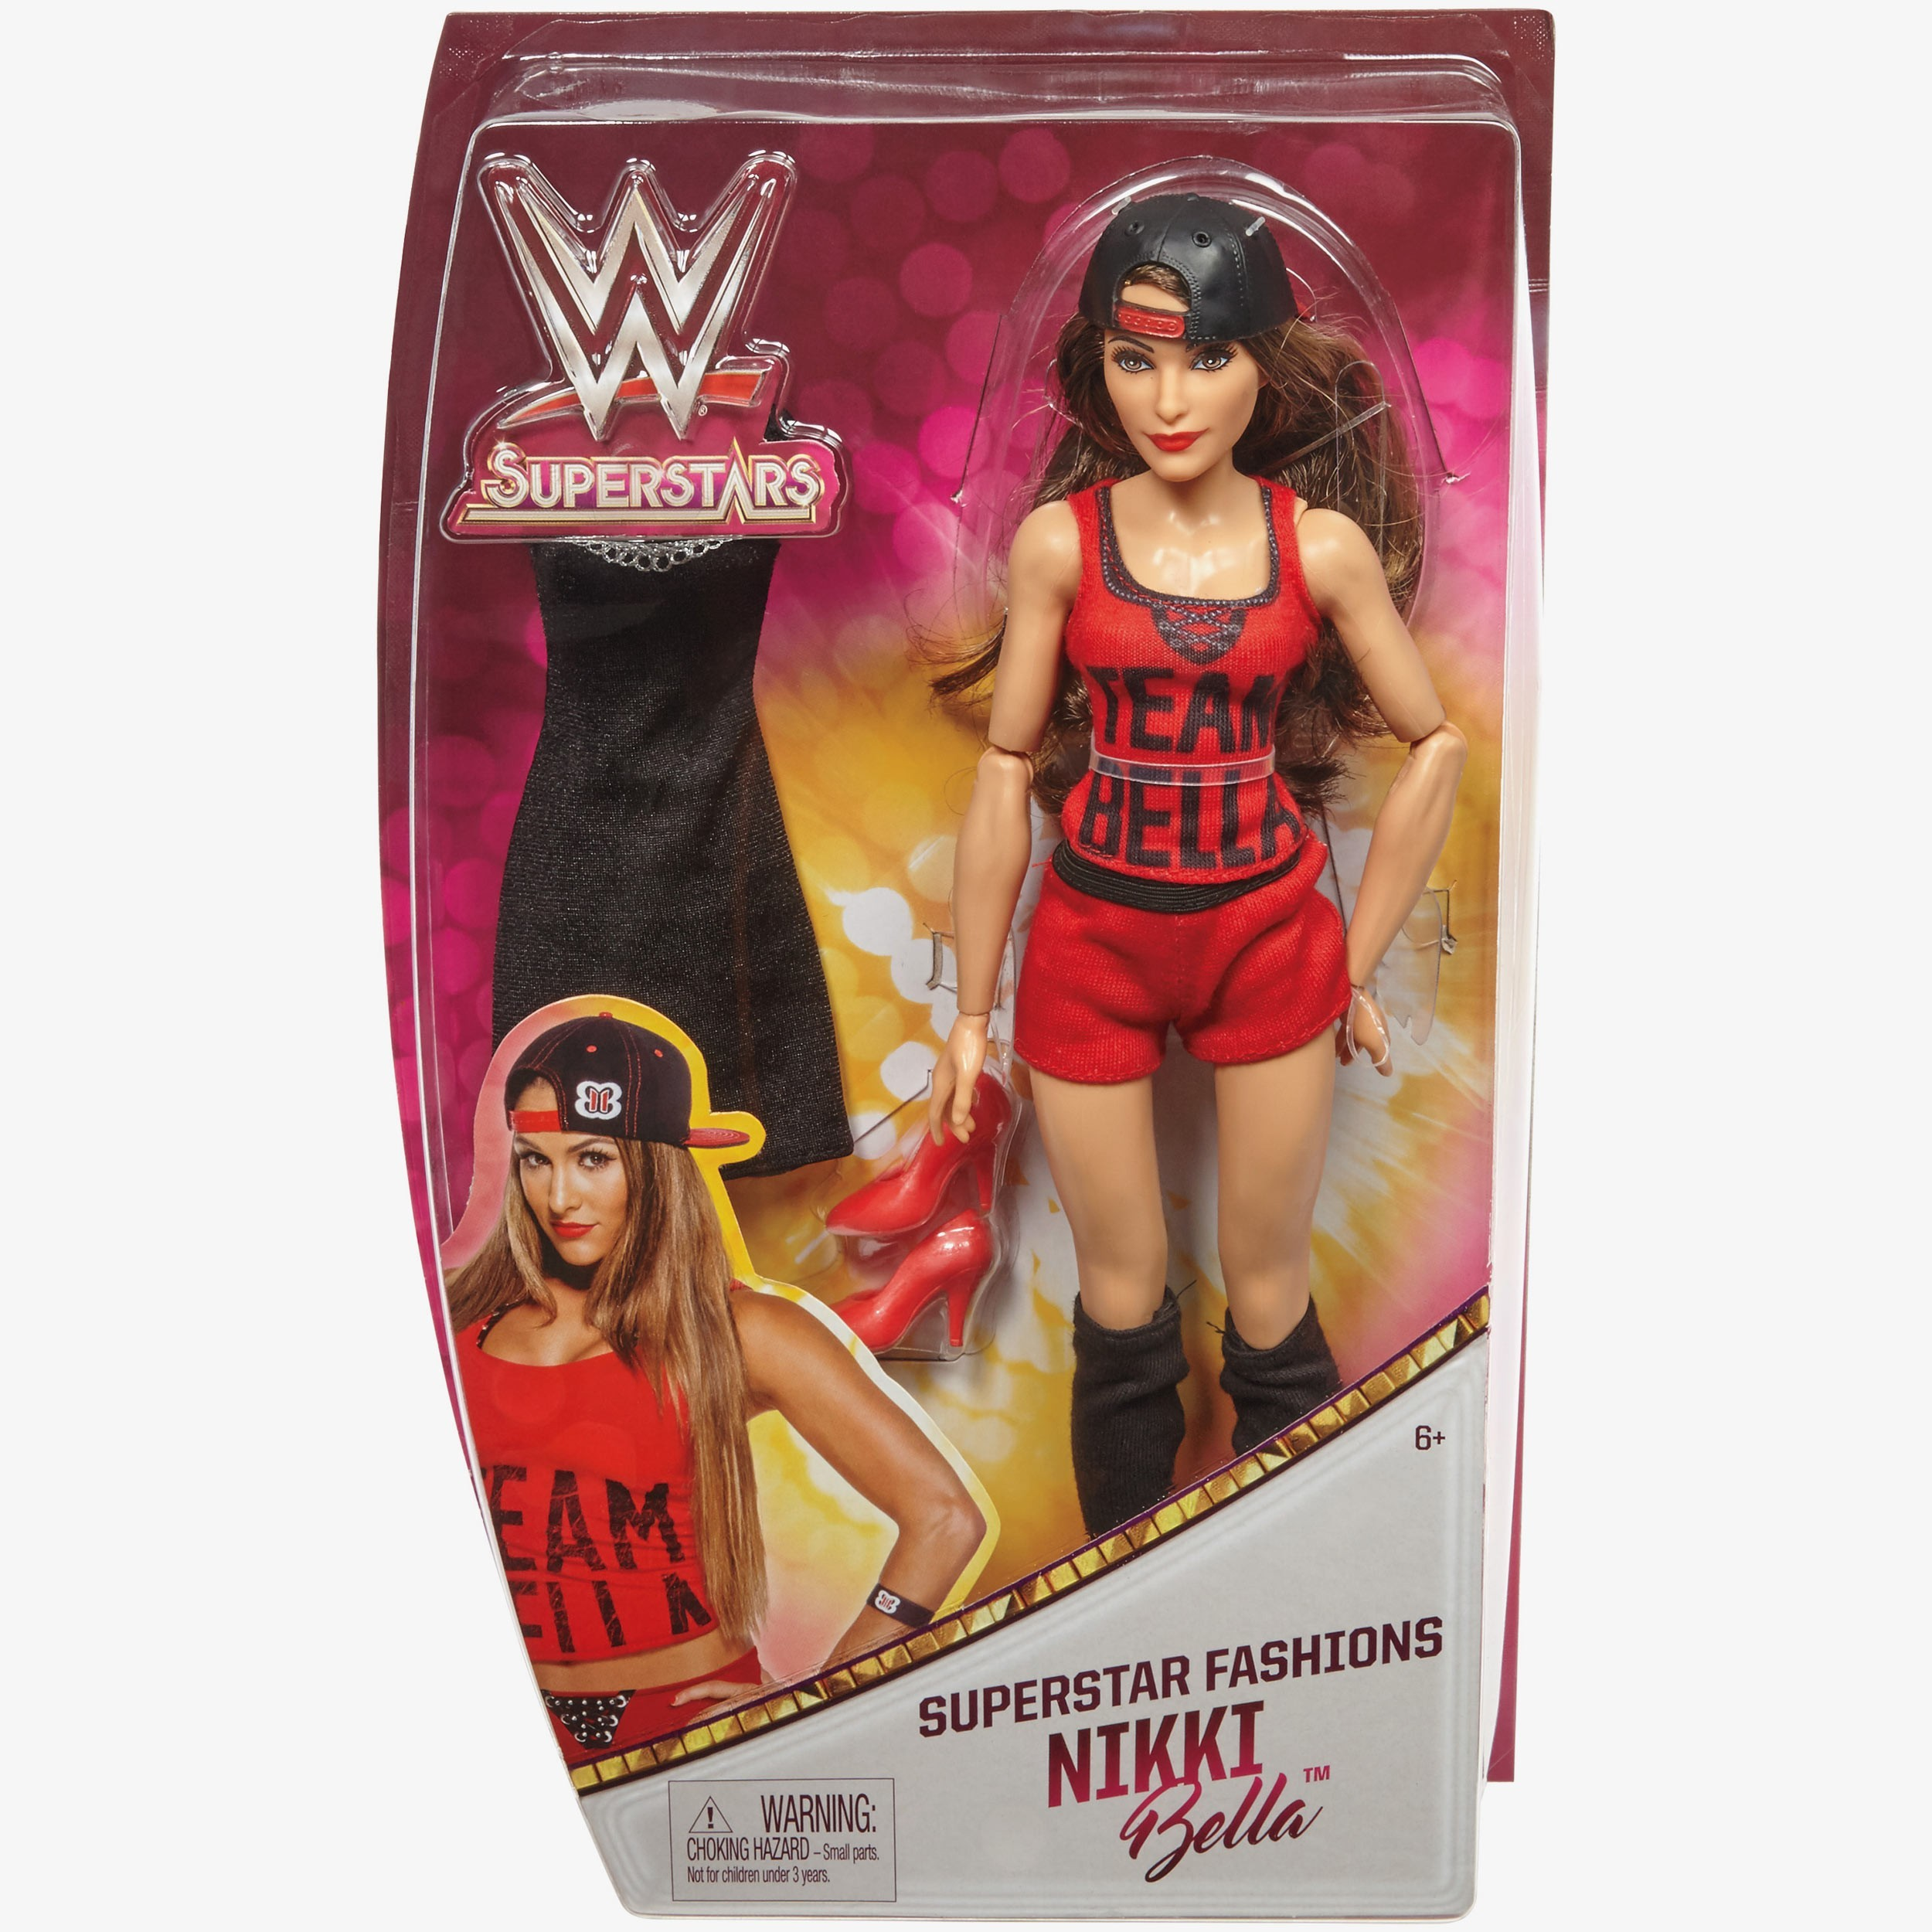 Nikki bella 12 inch wwe fashion doll with extra accessories Nikki bella fashion style